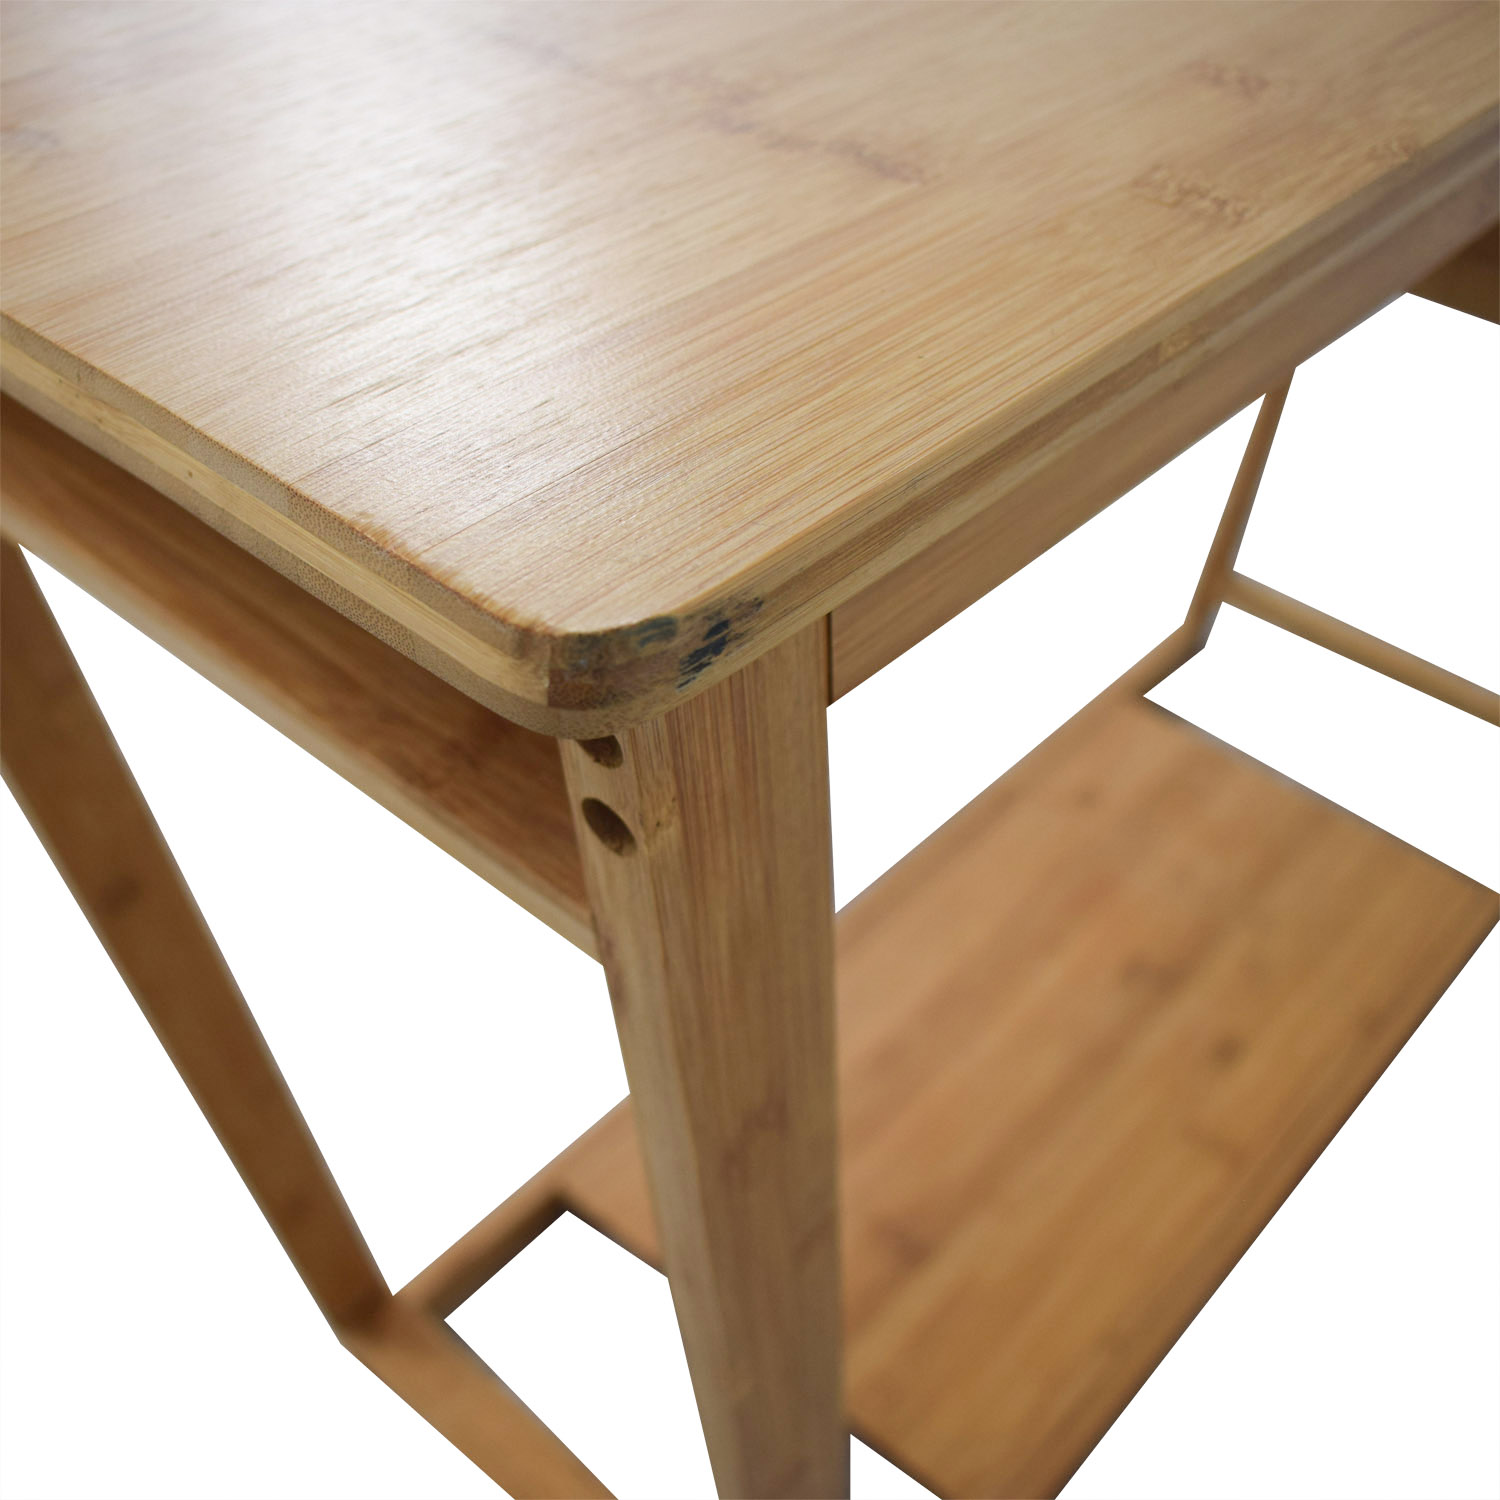 Bamboo Wood Single Drawer Desk or Table / Tables